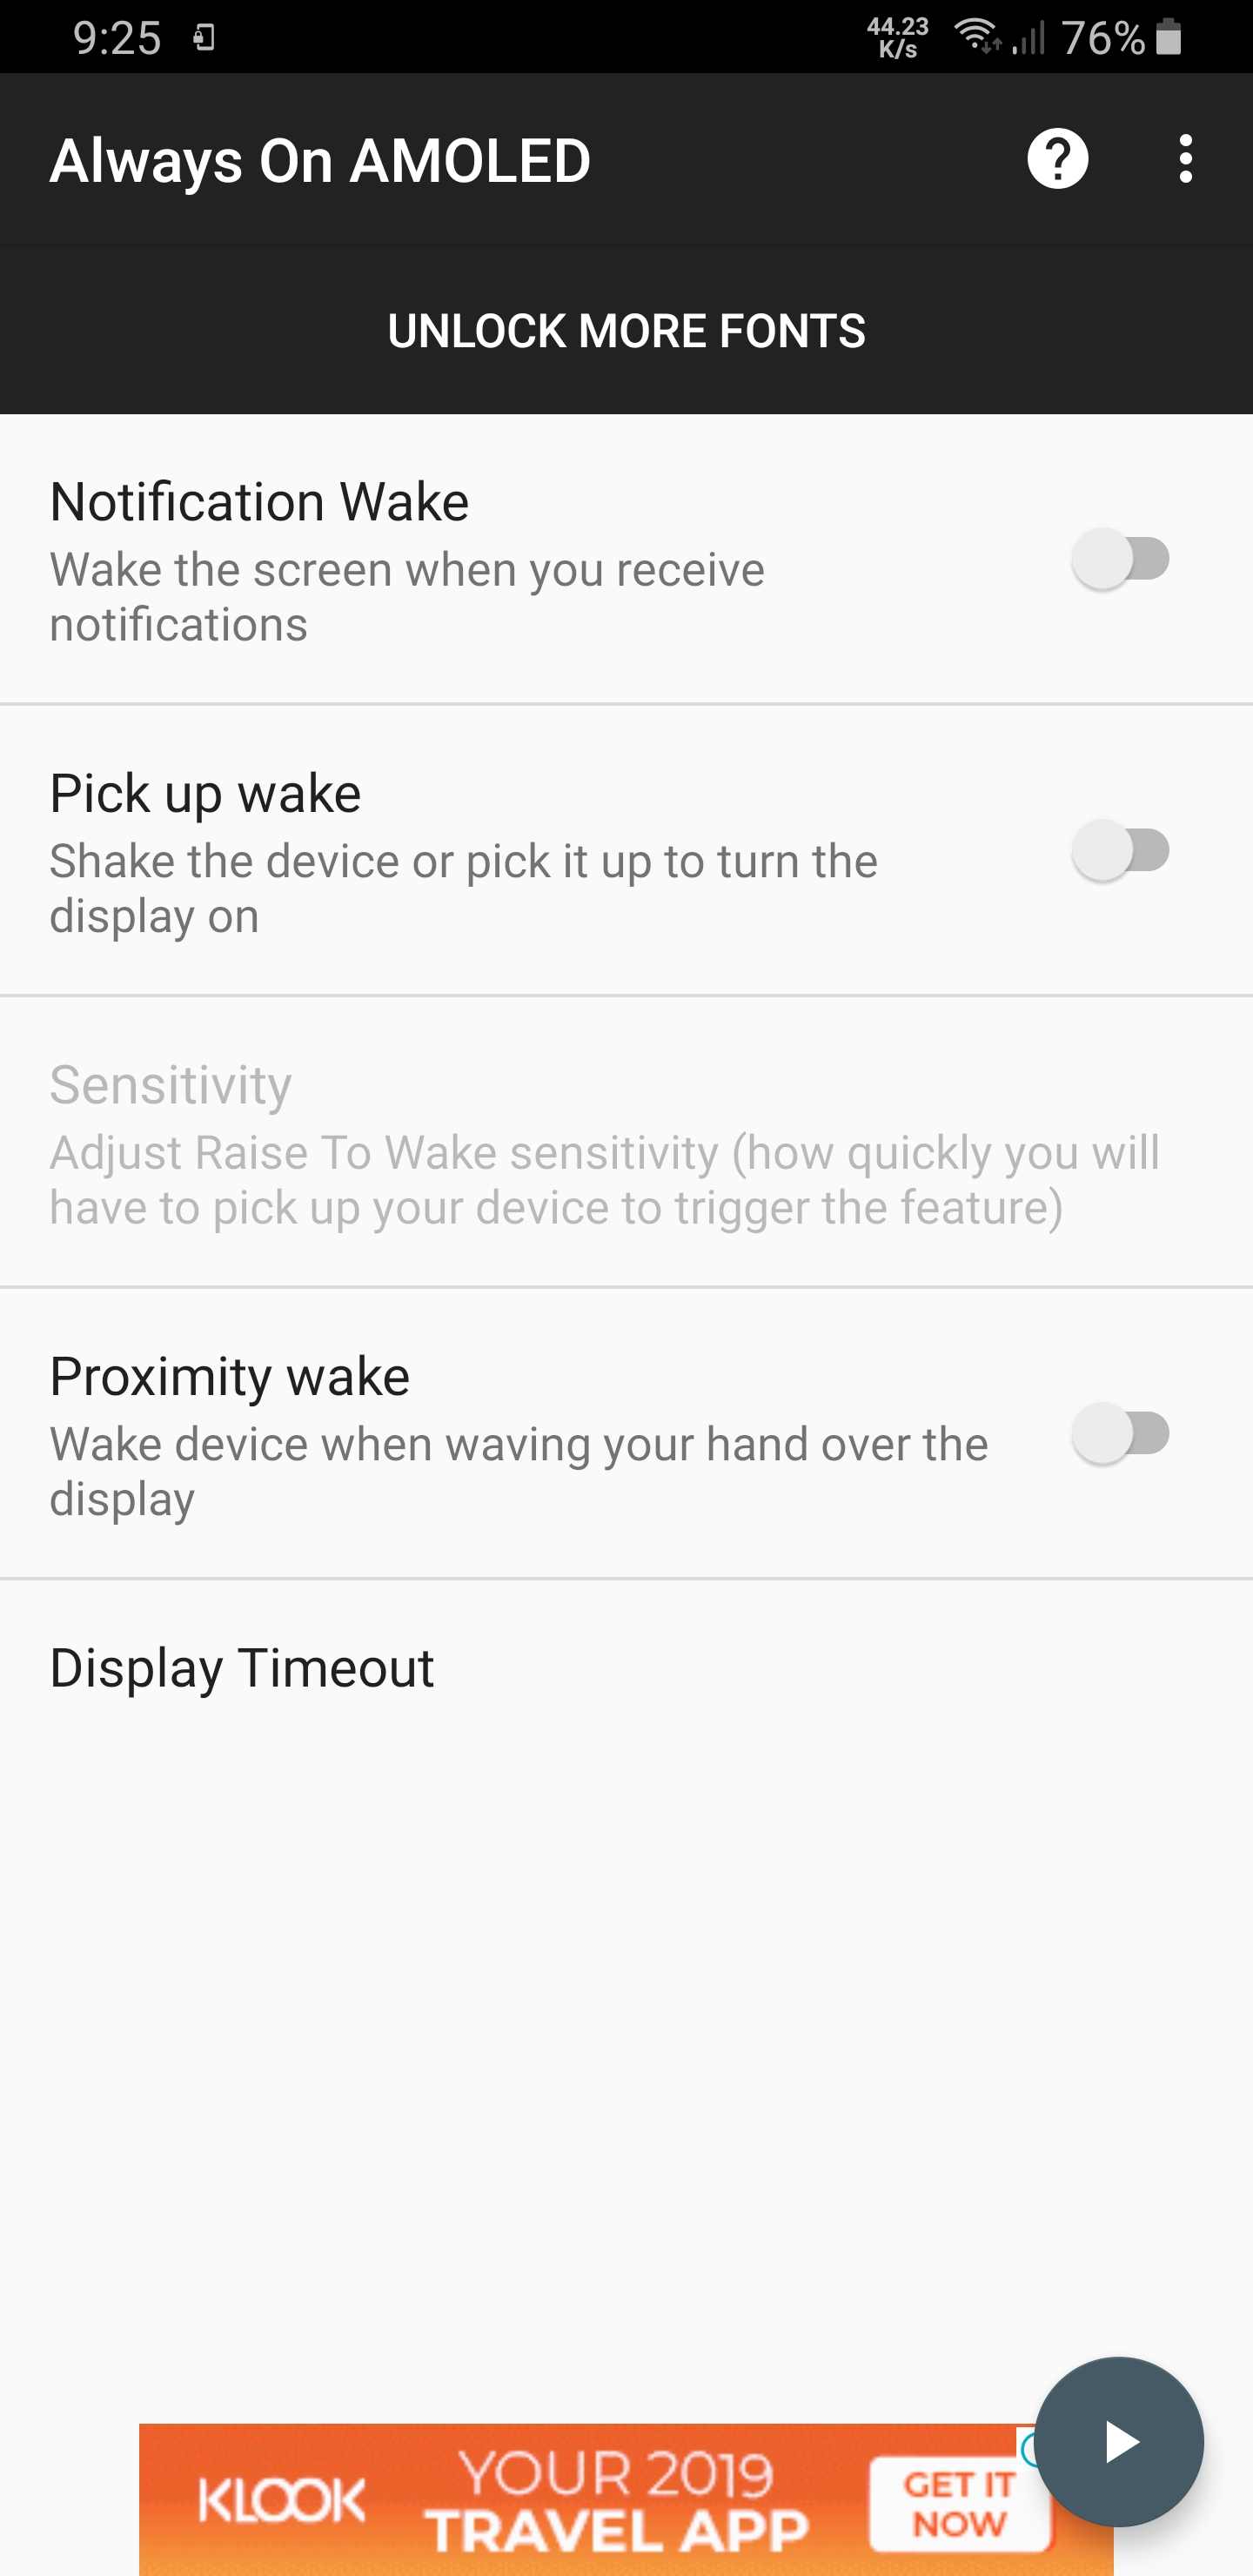 How to get an always-on display on your Android phone